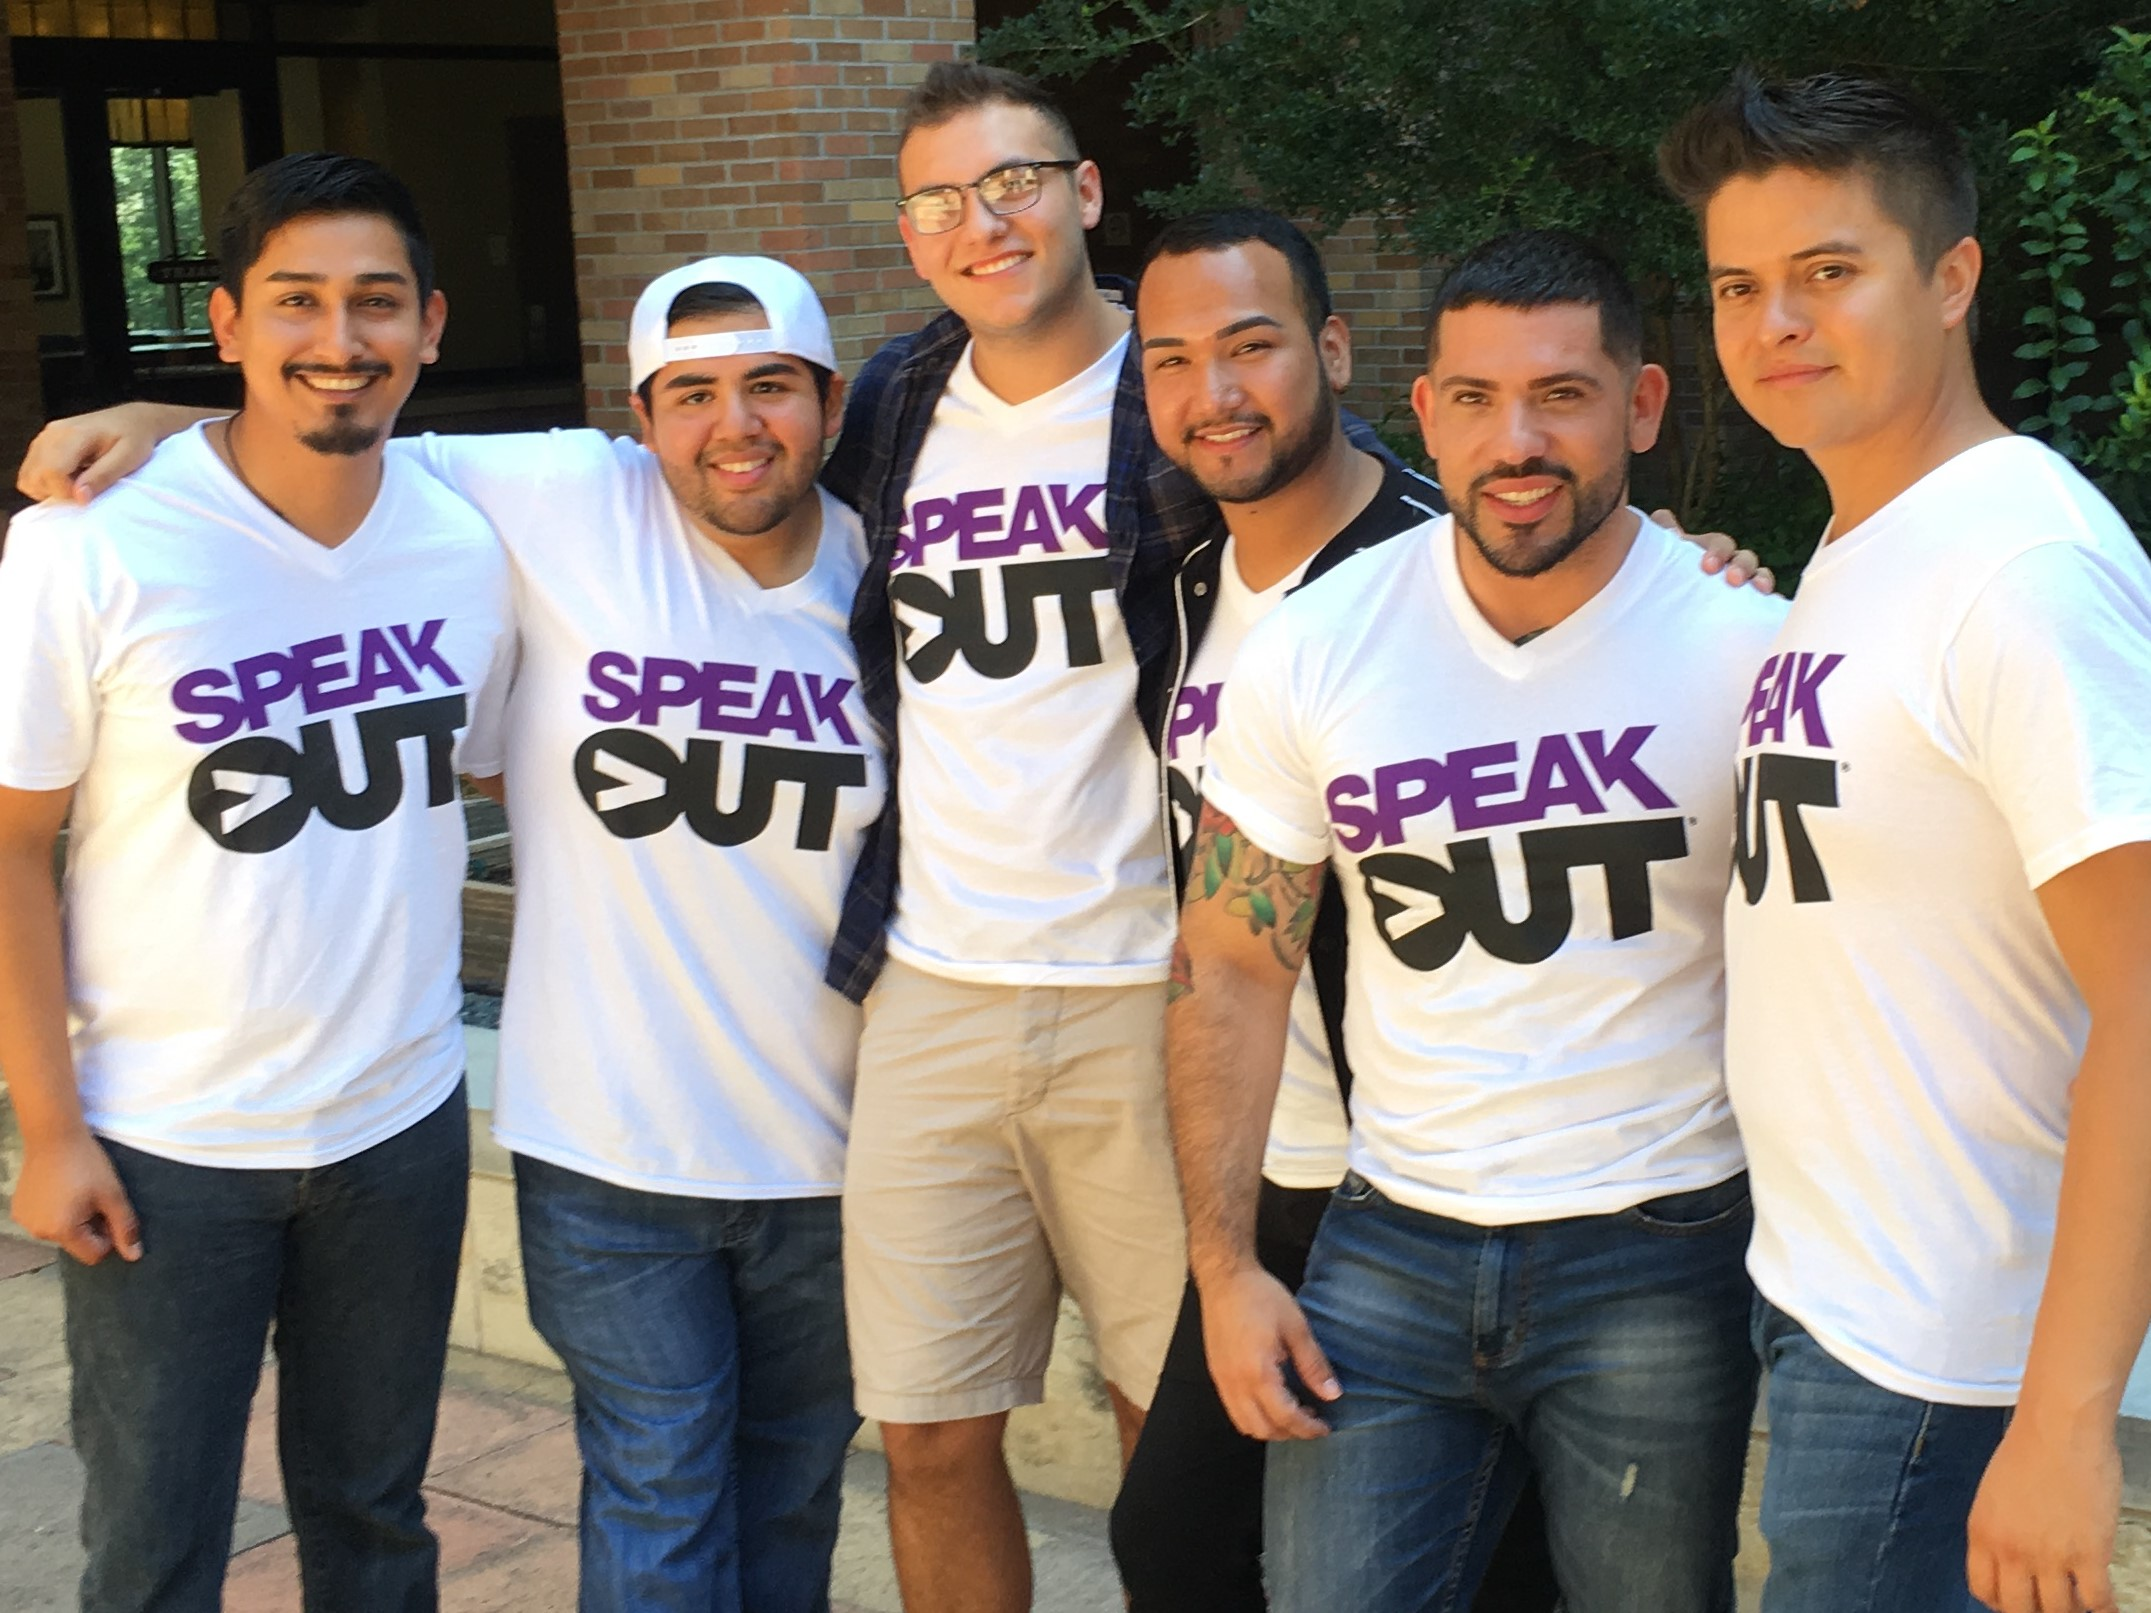 Group of people standing wearing Speak Out white t-shirts